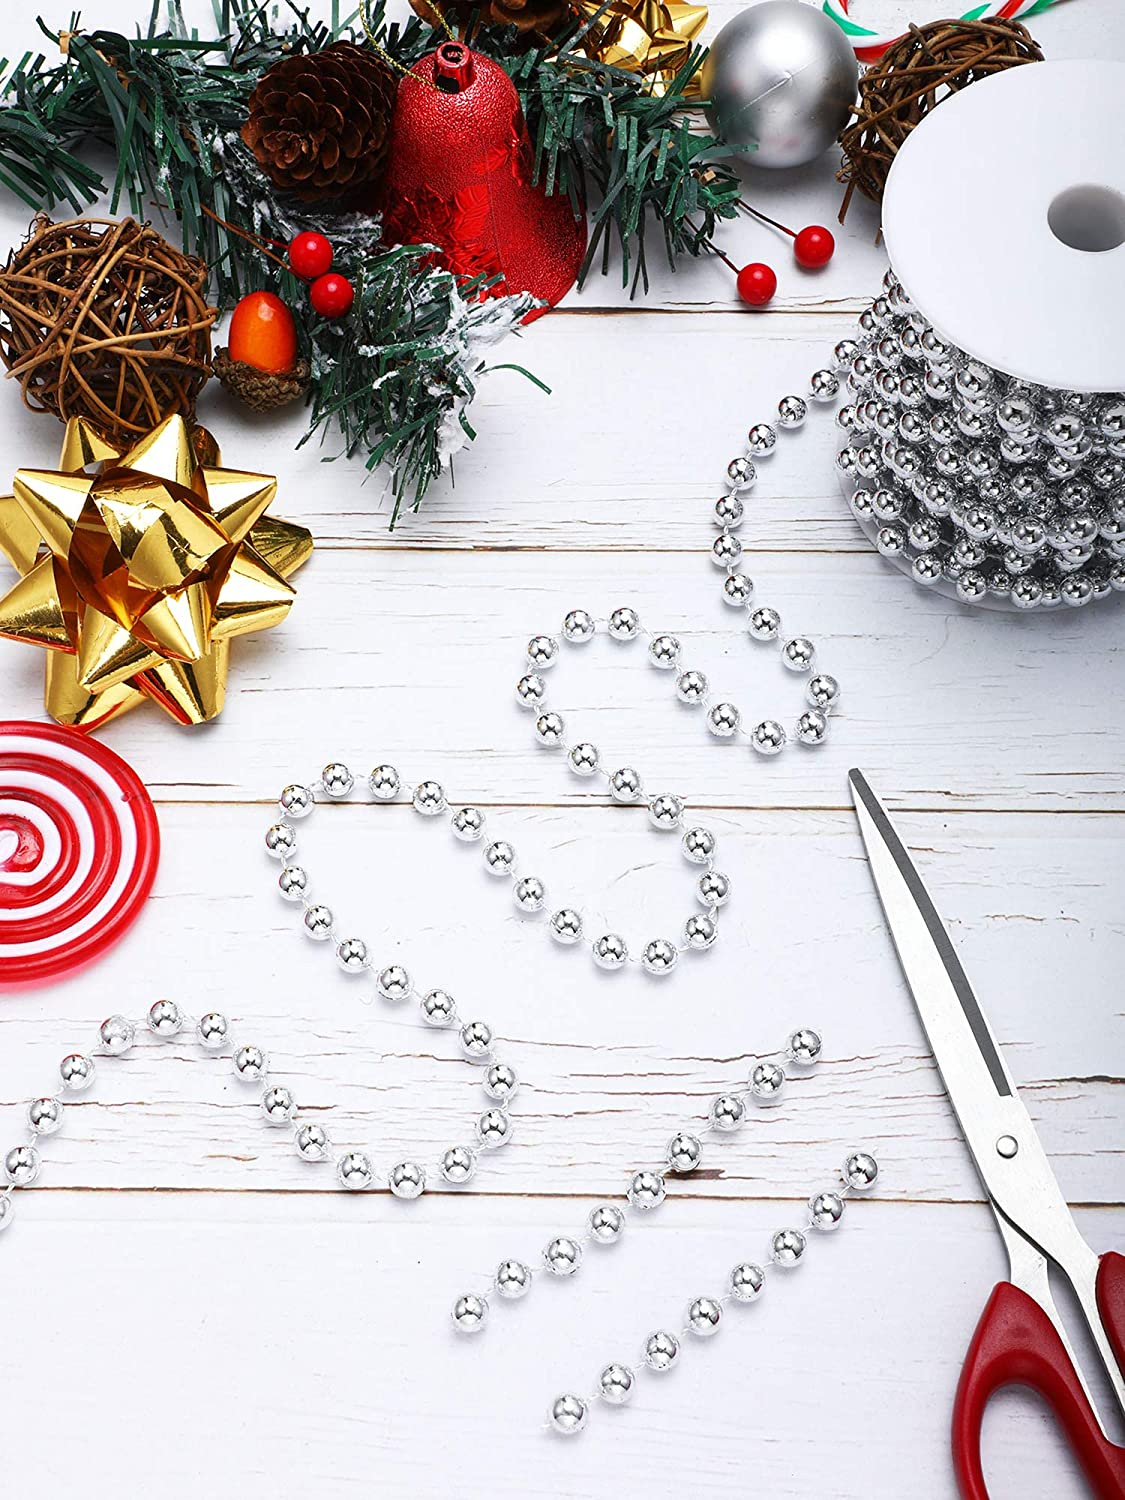 Silver 26 Feet Christmas Tree Beaded Garland Plastic Pearl Strands Chain Artificial Pearls Beads Trim Garland for Xmas Tree Holiday Wedding DIY Decoration Supplies